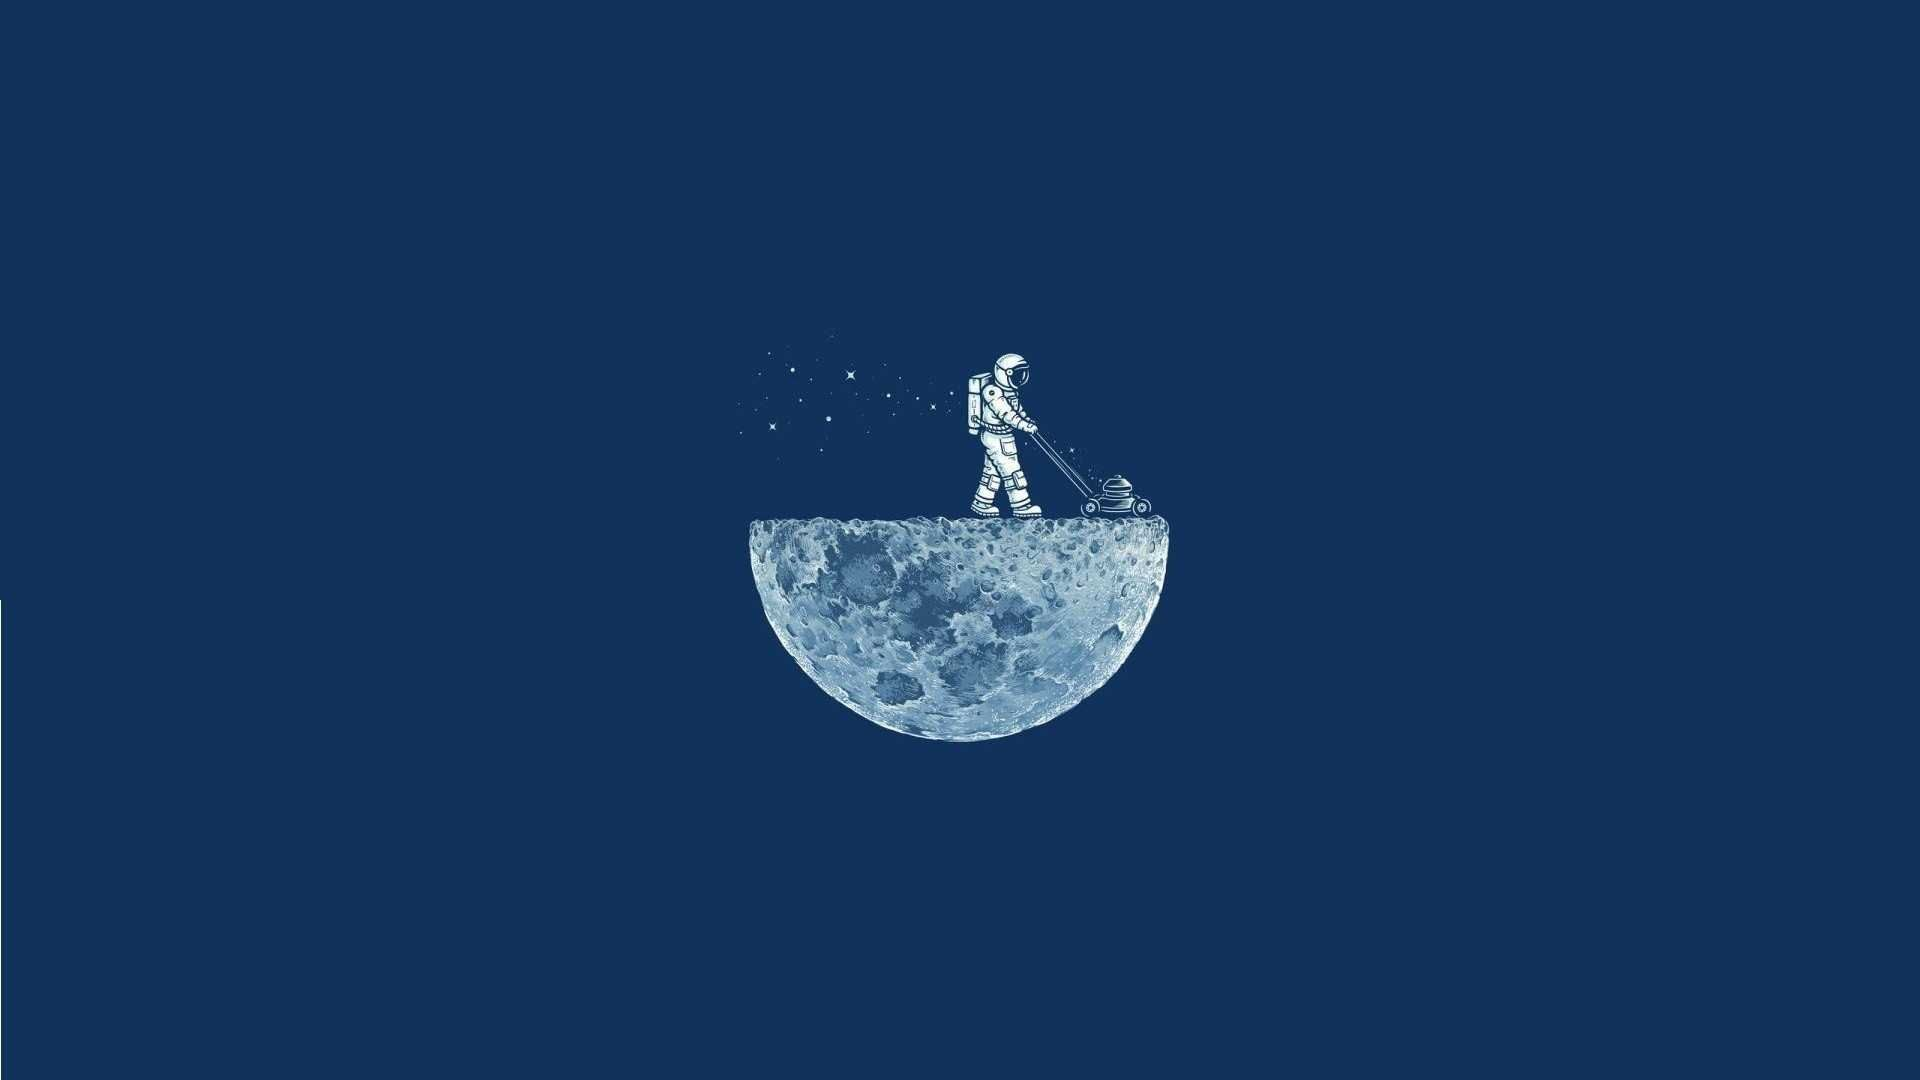 Free Download Minimalist Wallpapers Hd Astronaut Wallpaper Minimalist Wallpaper Minimal Wallpaper